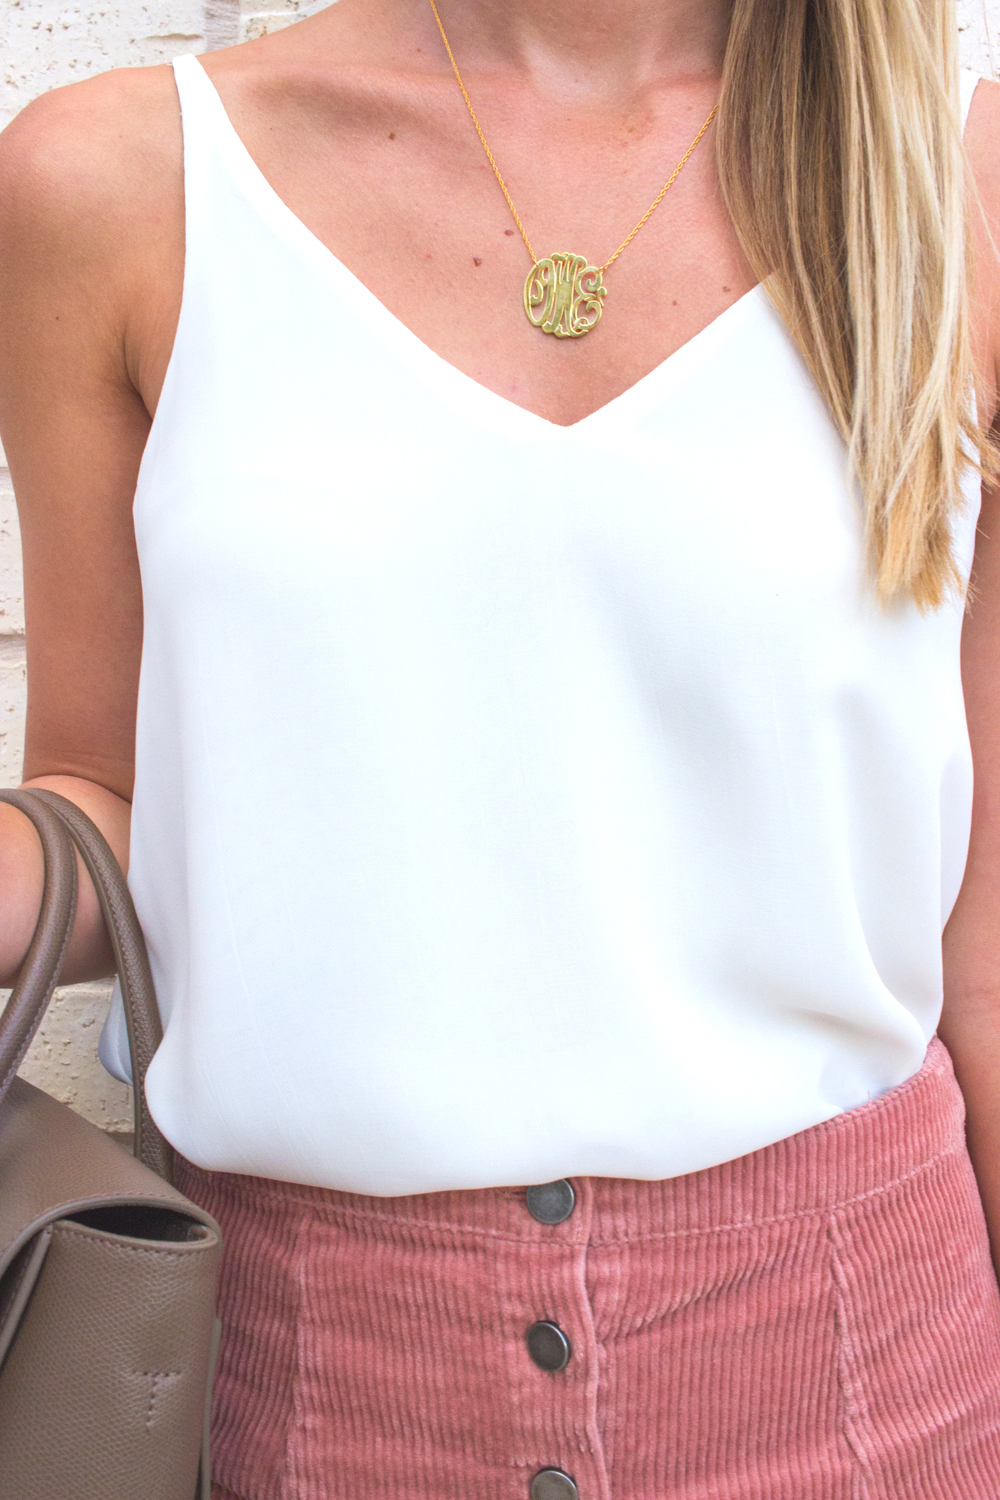 livvyland-blog-olivia-watson-moon-and-lola-monogram-necklace-small-gold-blush-corduroy-skirt-fall-a-line-toms-majorca-booties-5